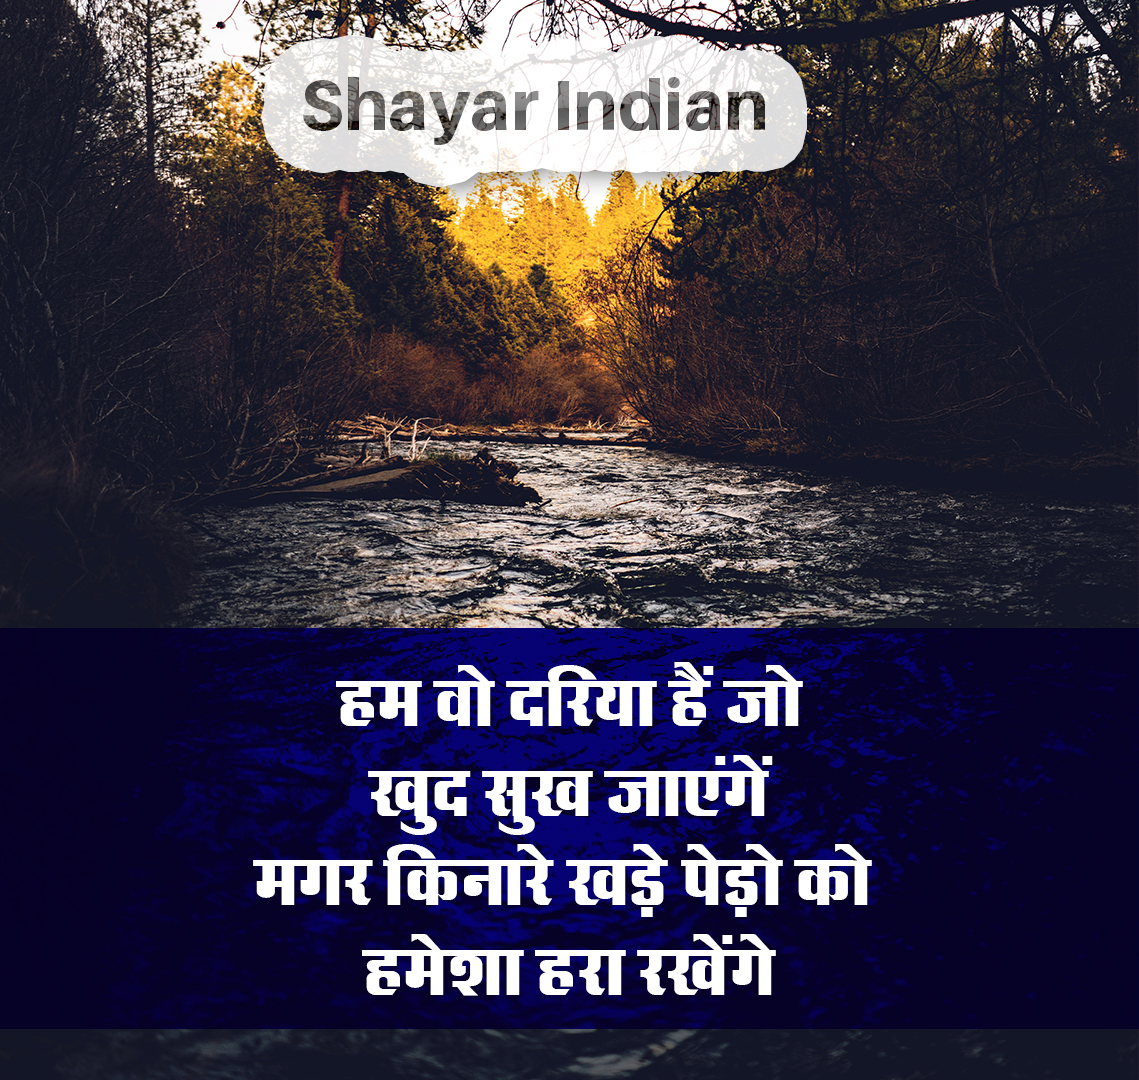 Best Relationship-Friendship Status in Hindi | Shayar Indian